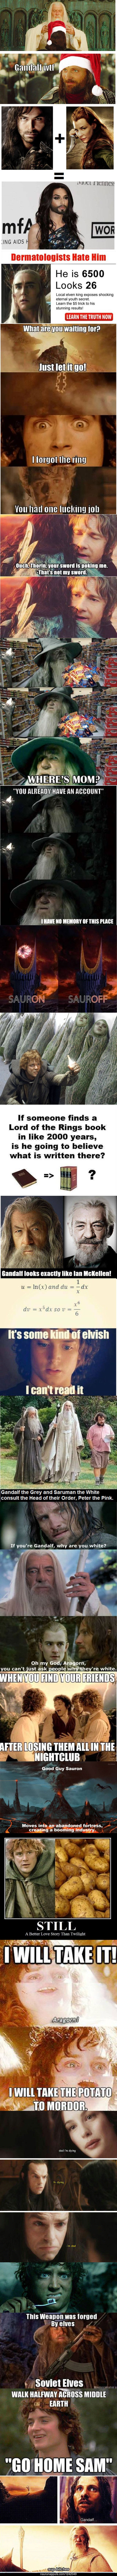 More interesting lord of the rings facts.